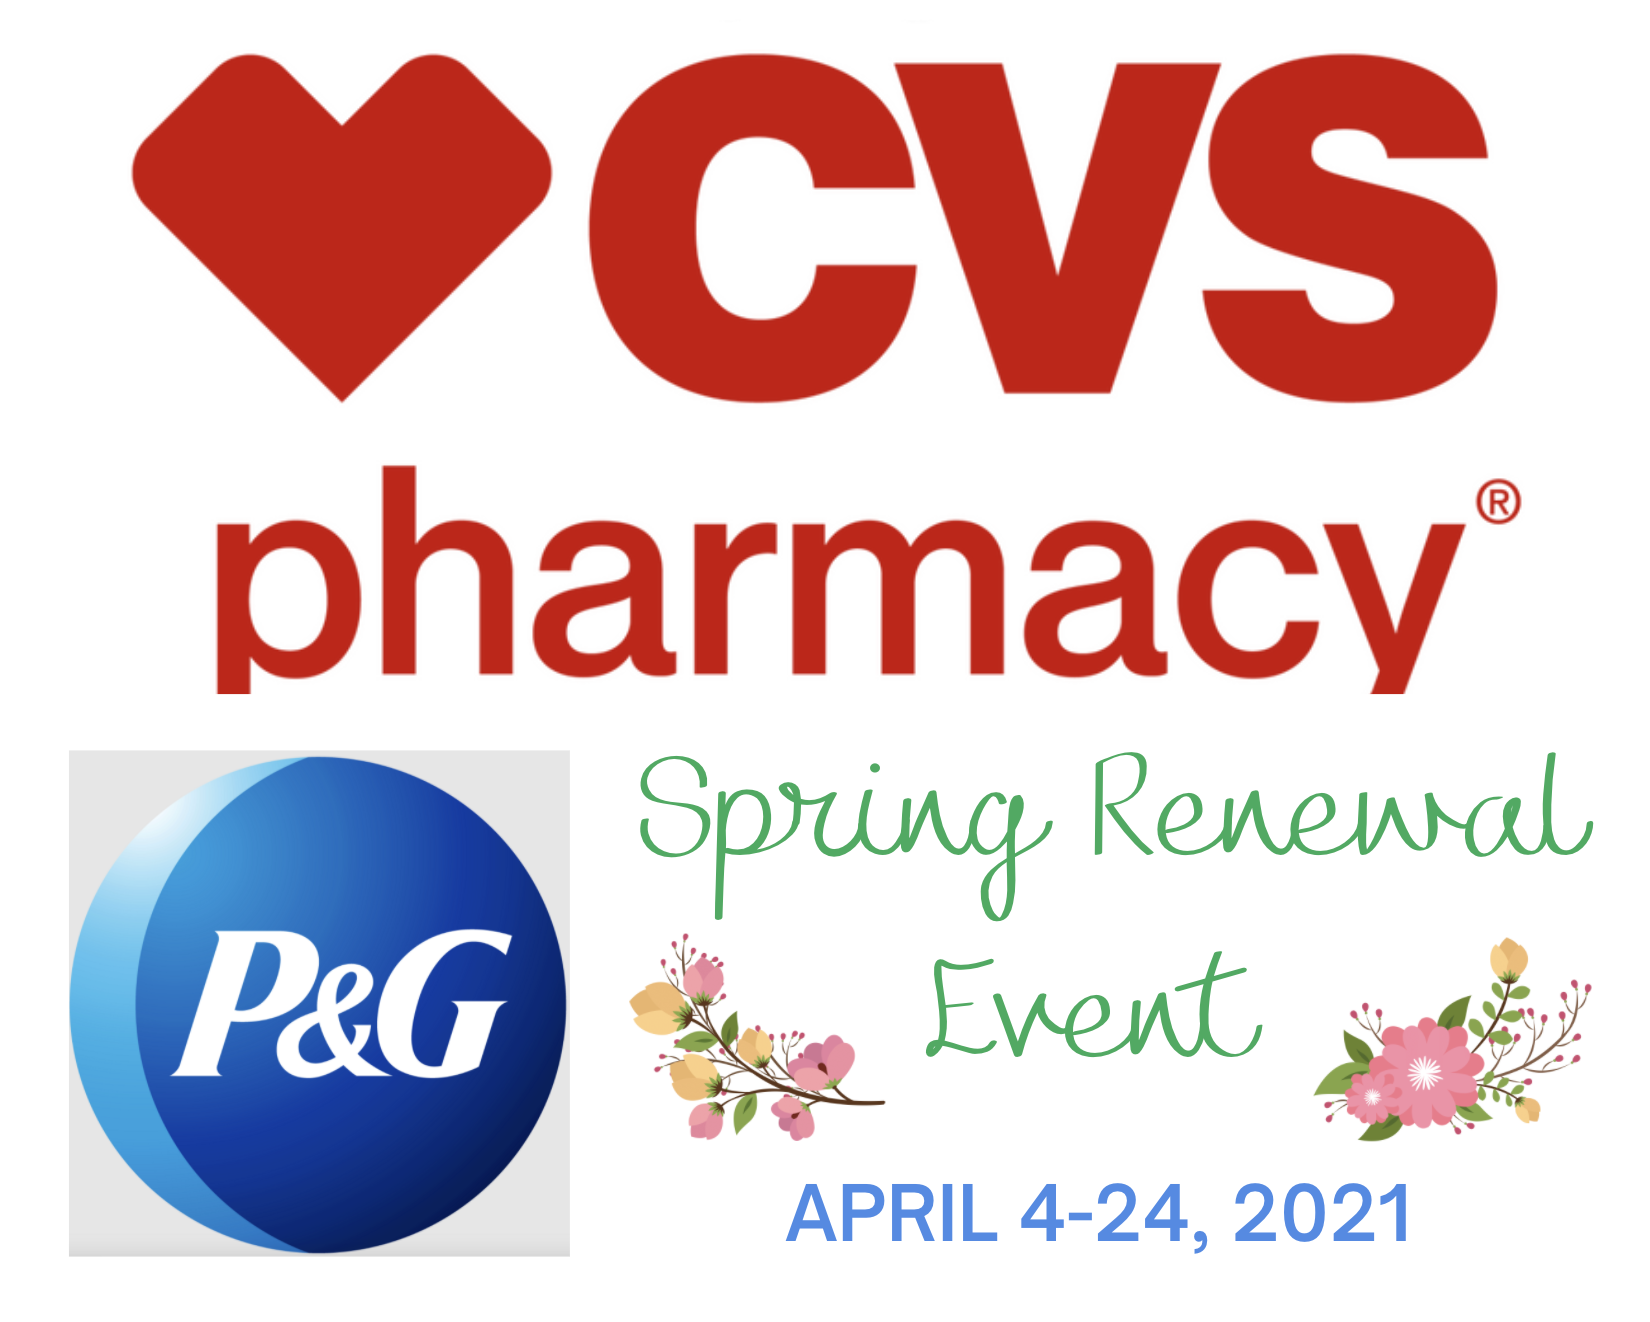 From April 4-21, 2021, you can get $10 Extra Bucks back when you spend $40 of P&G products at CVS during the Spring Renewal savings event!